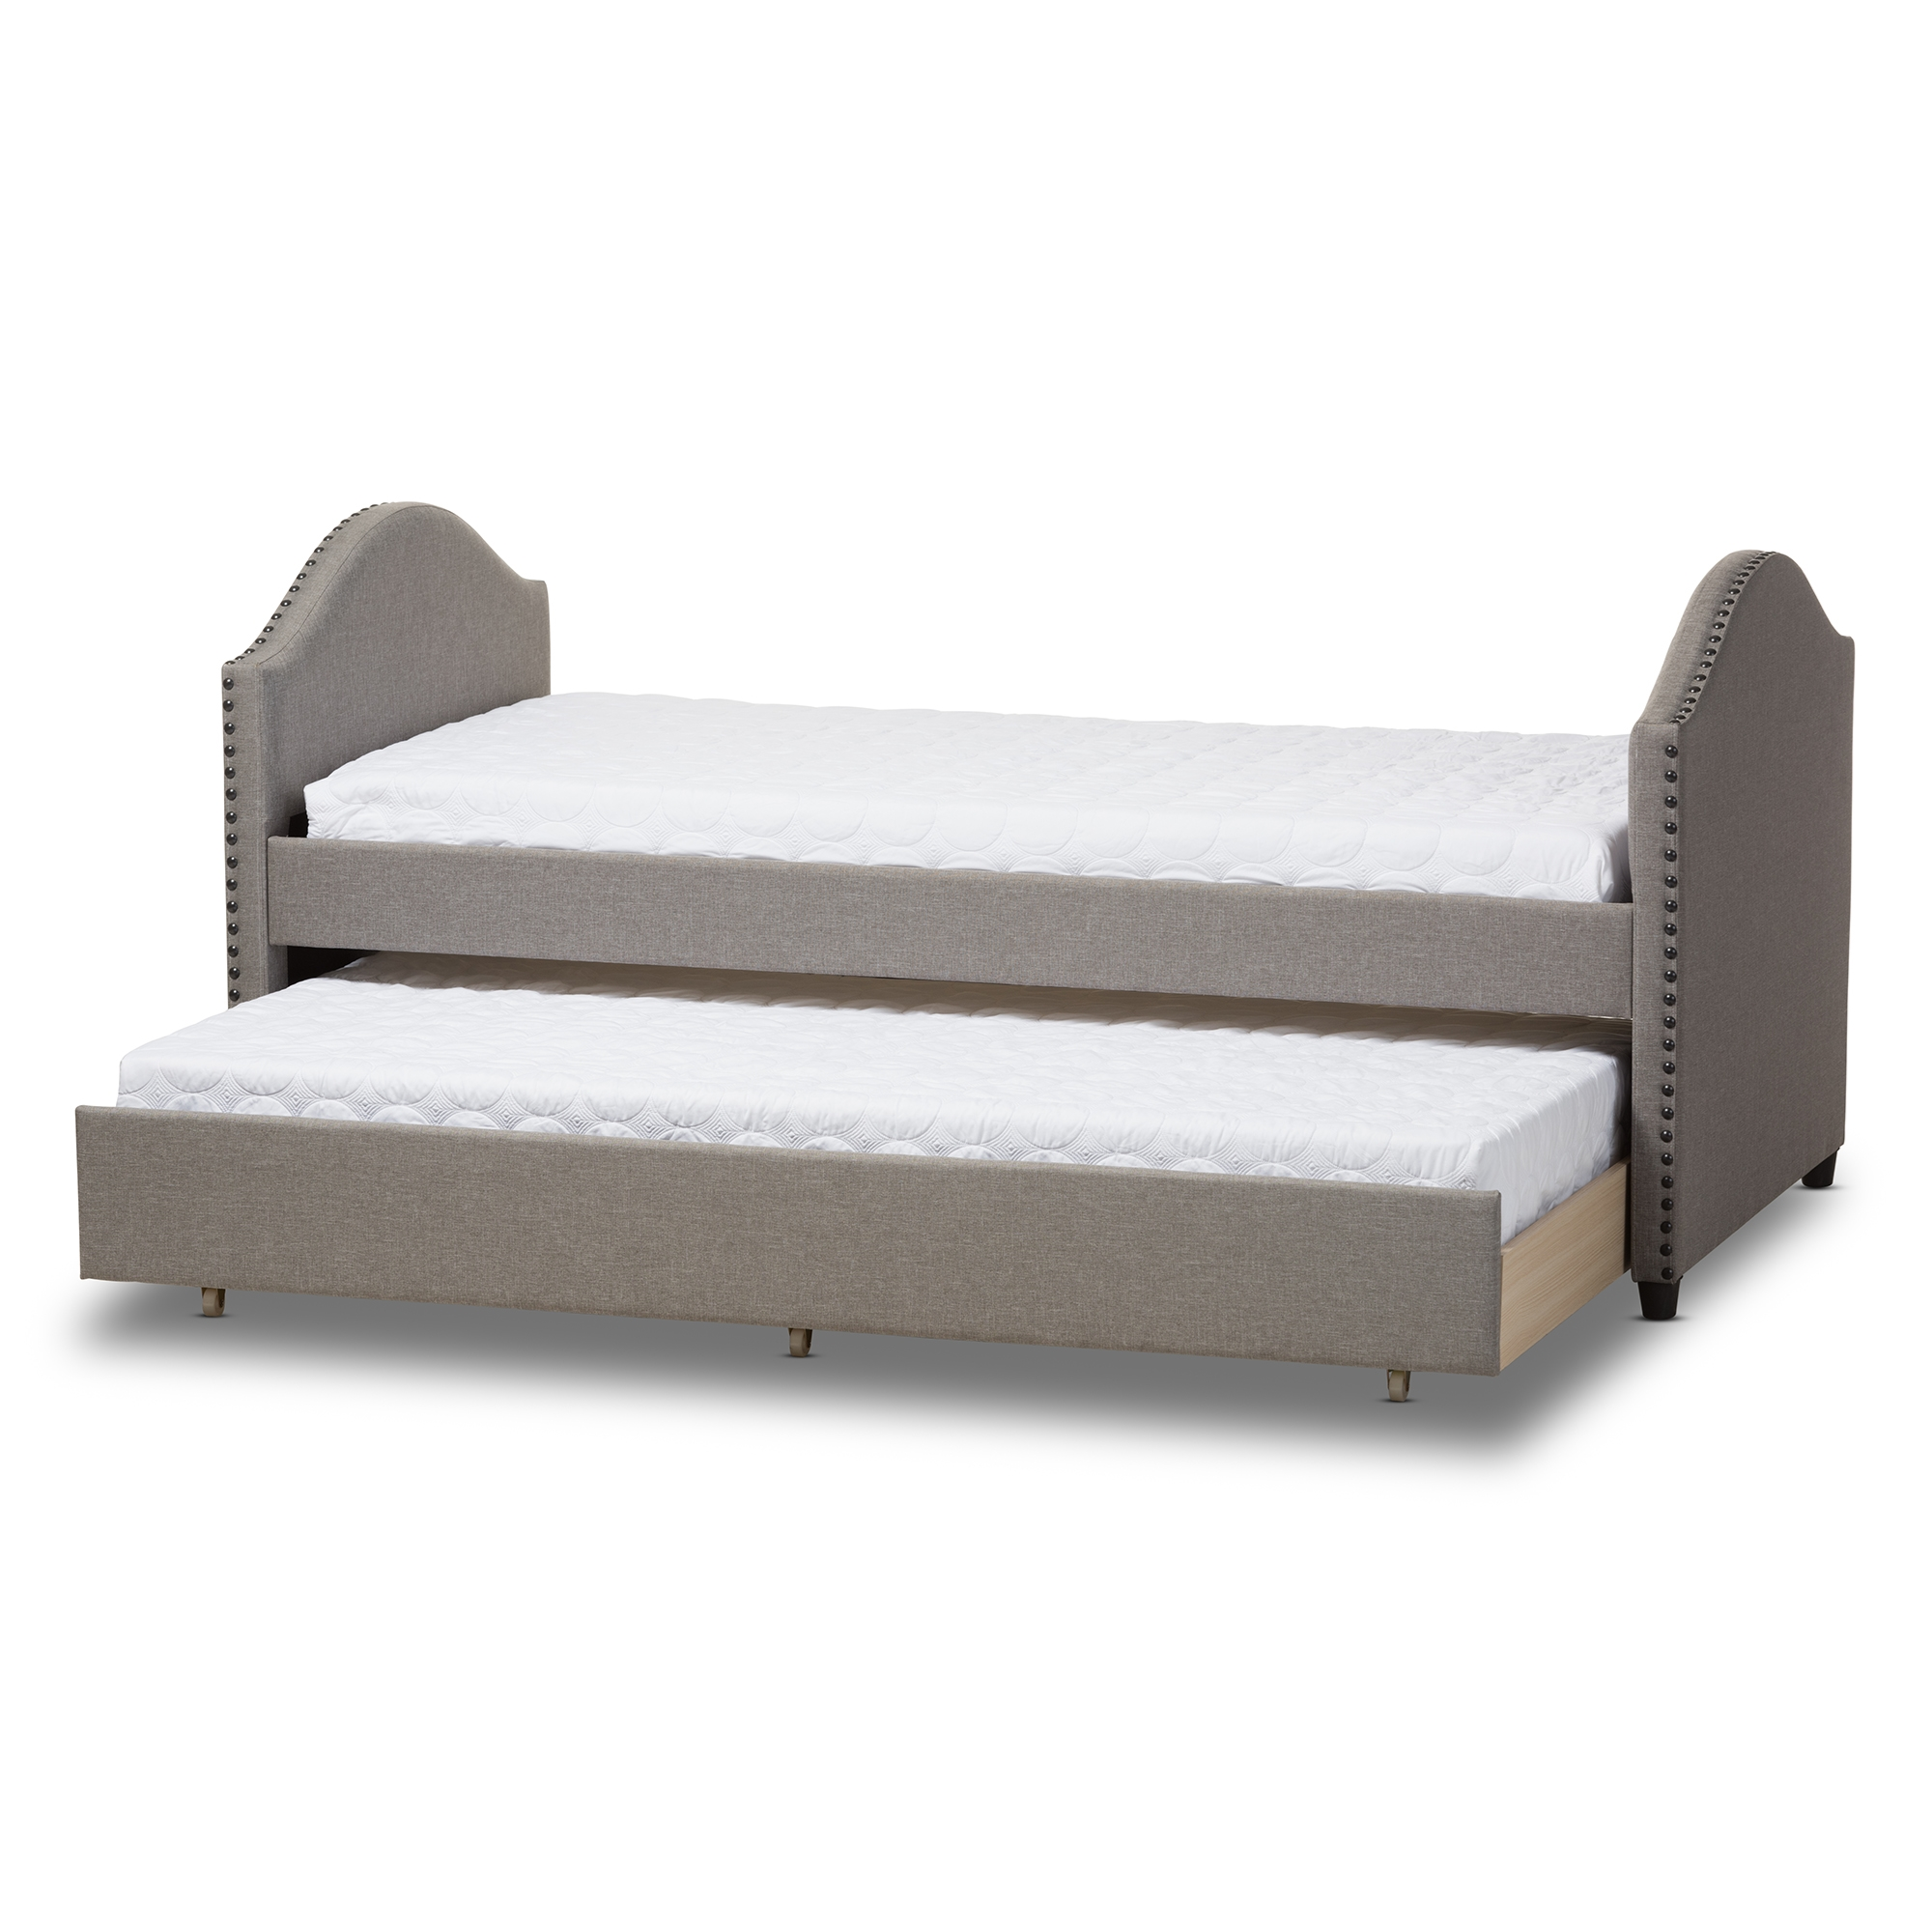 baxton studio alessia modern and grey fabric upholstered daybed with guest trundle bed iecf8751 - Baxton Studio Bed